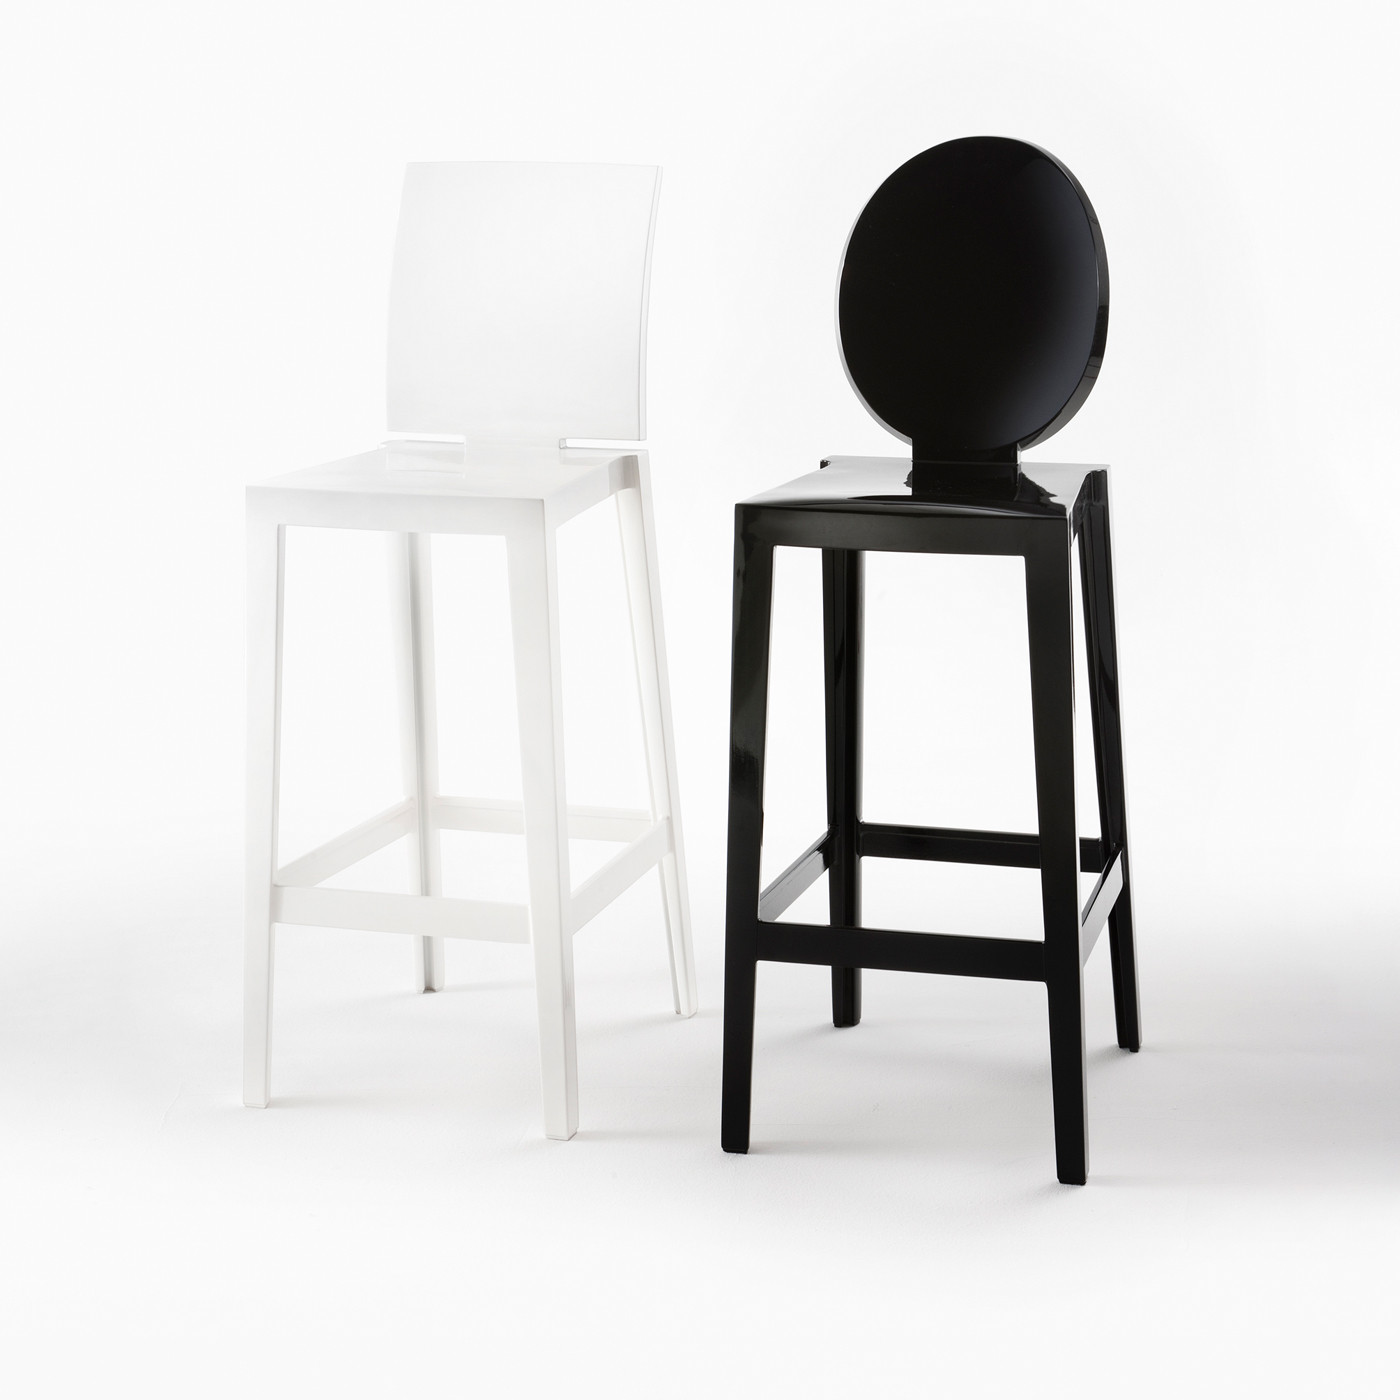 d'assise Kartell More hauteur Please cm One de MoreOne Ghost tabouret bar65 hCsQrdtx